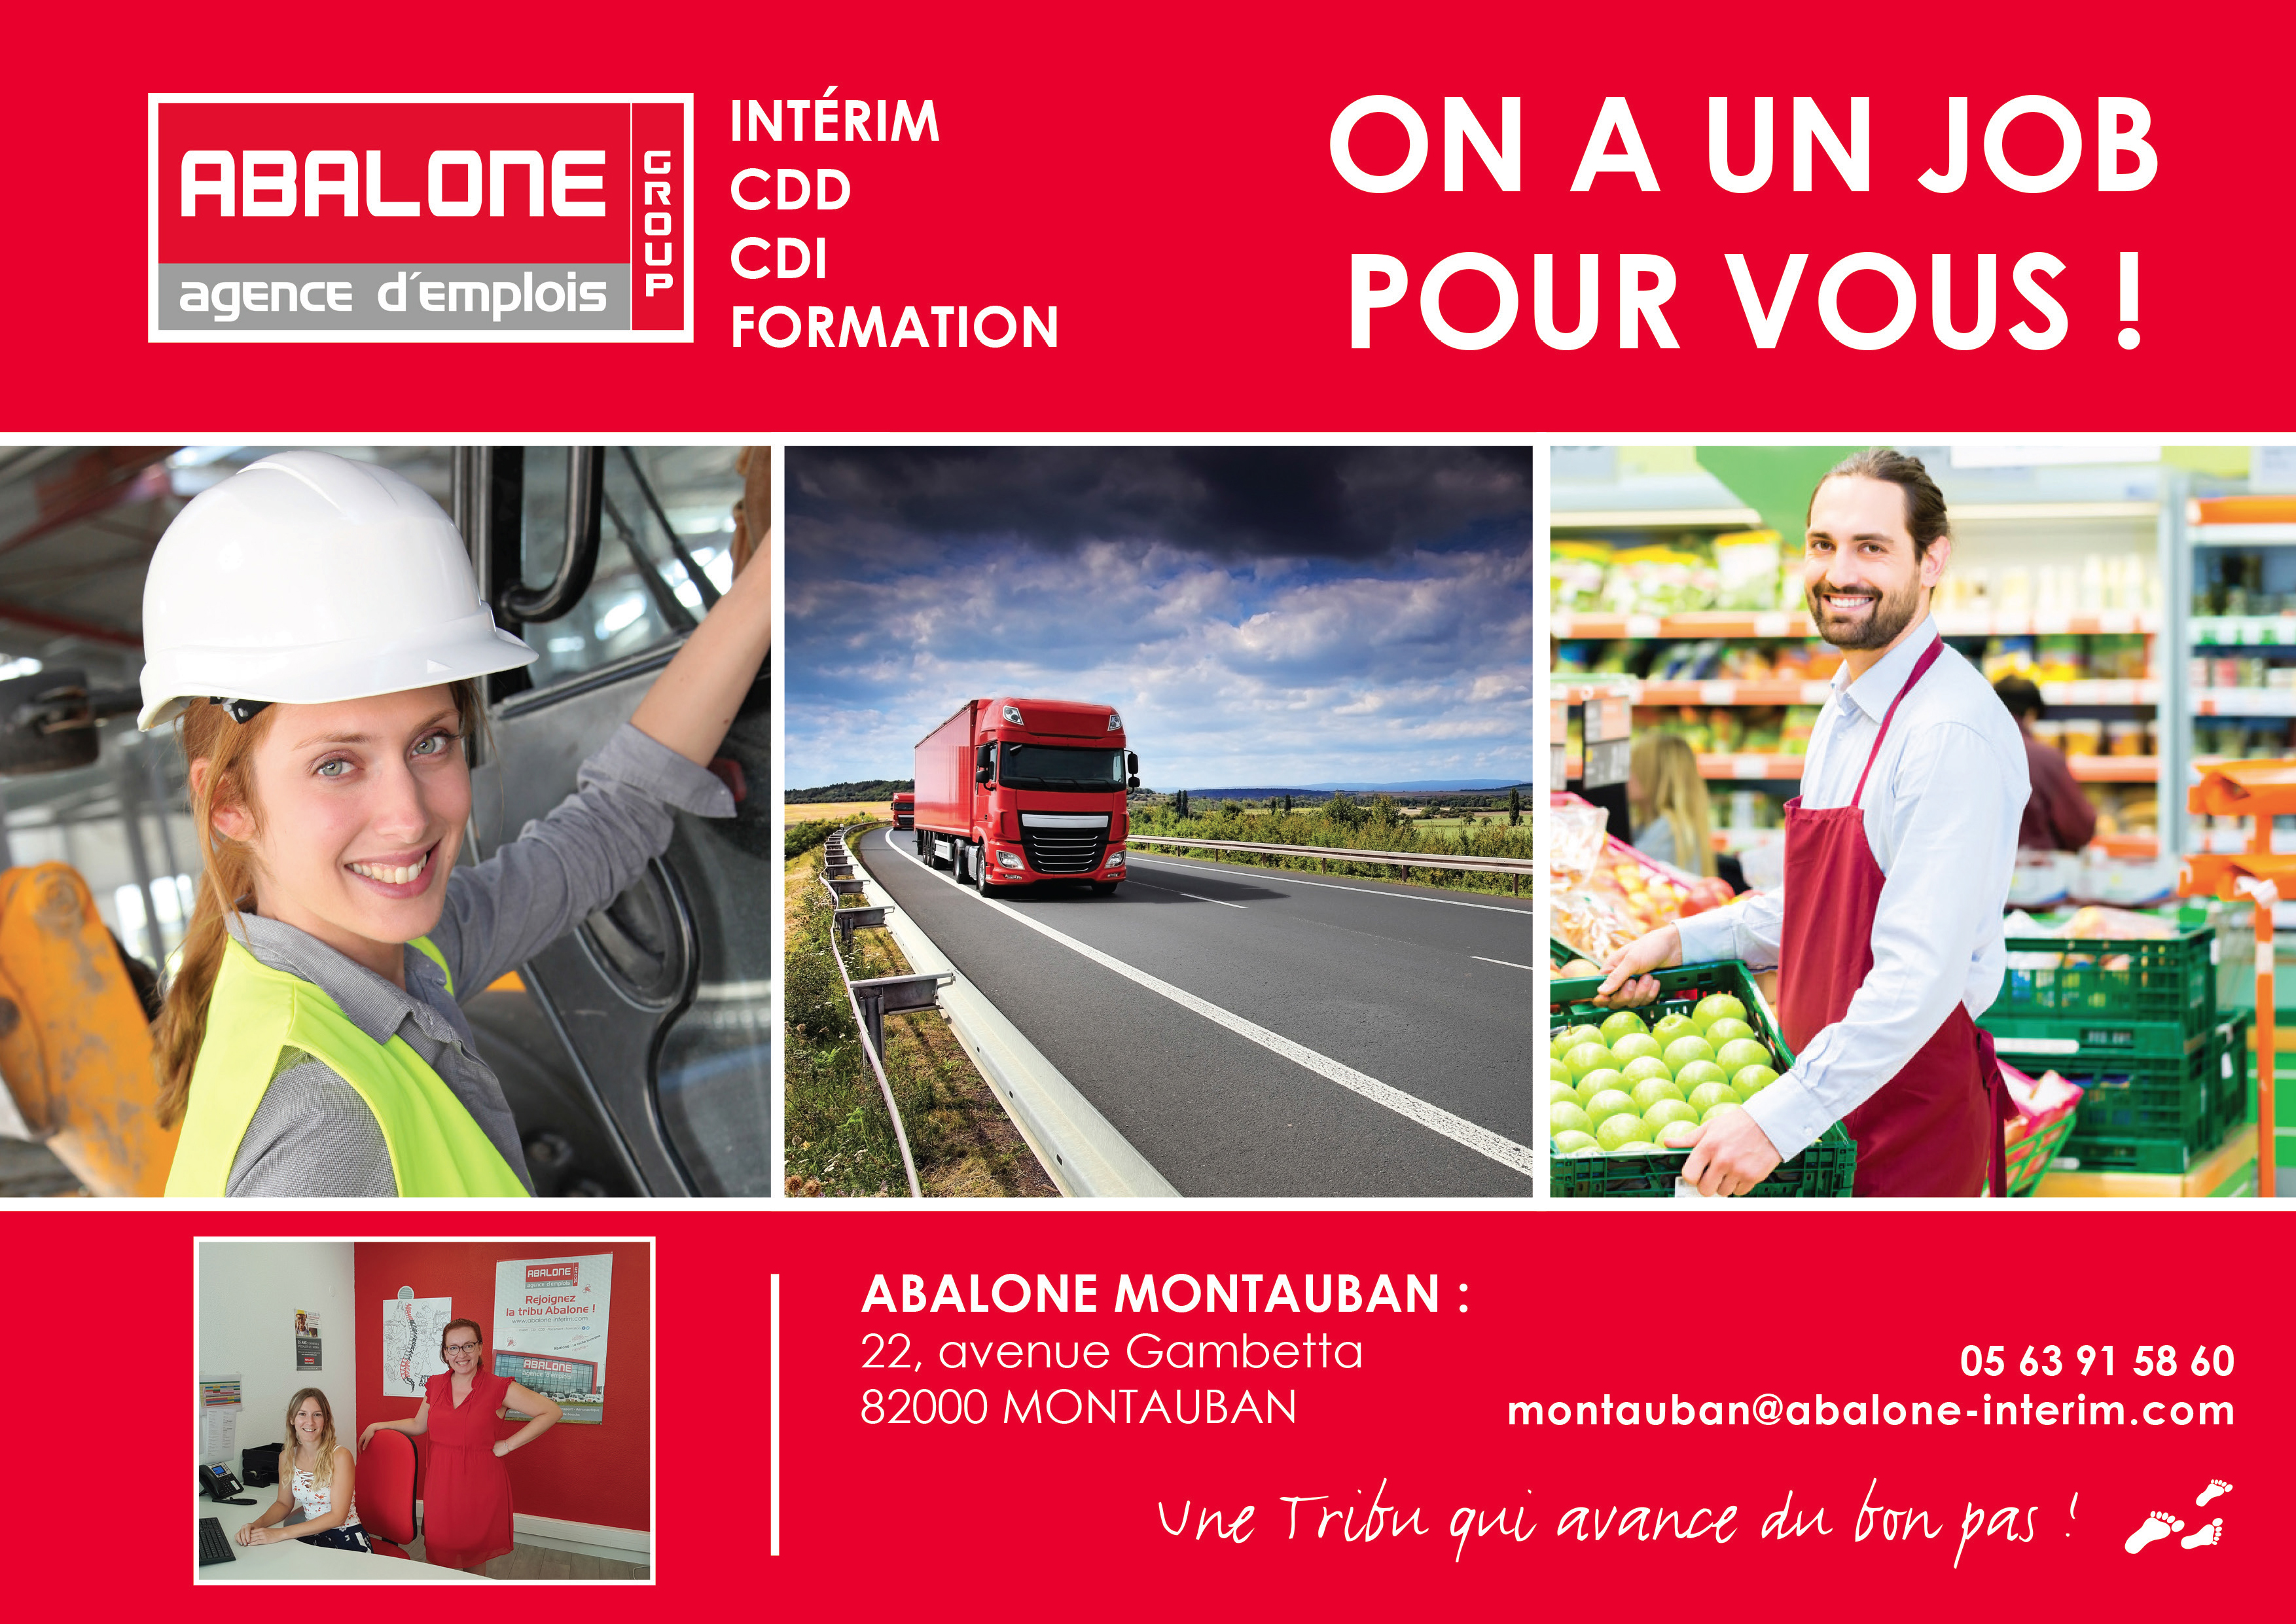 ABALONE AGENCE D'EMPLOI